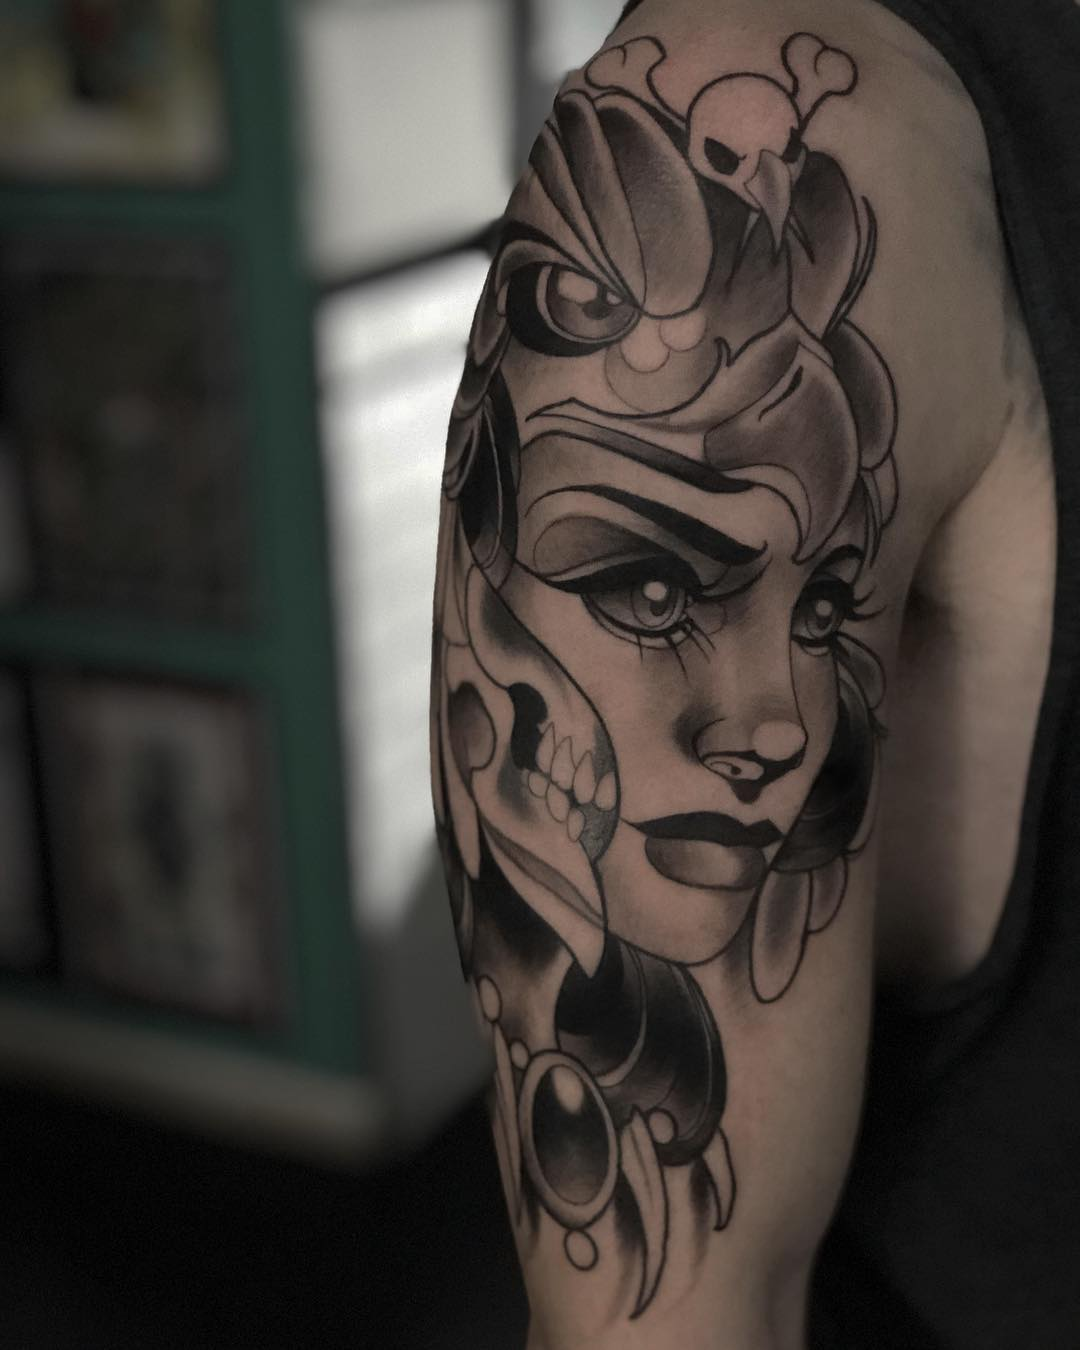 blake byrnes tattoo artist london 05